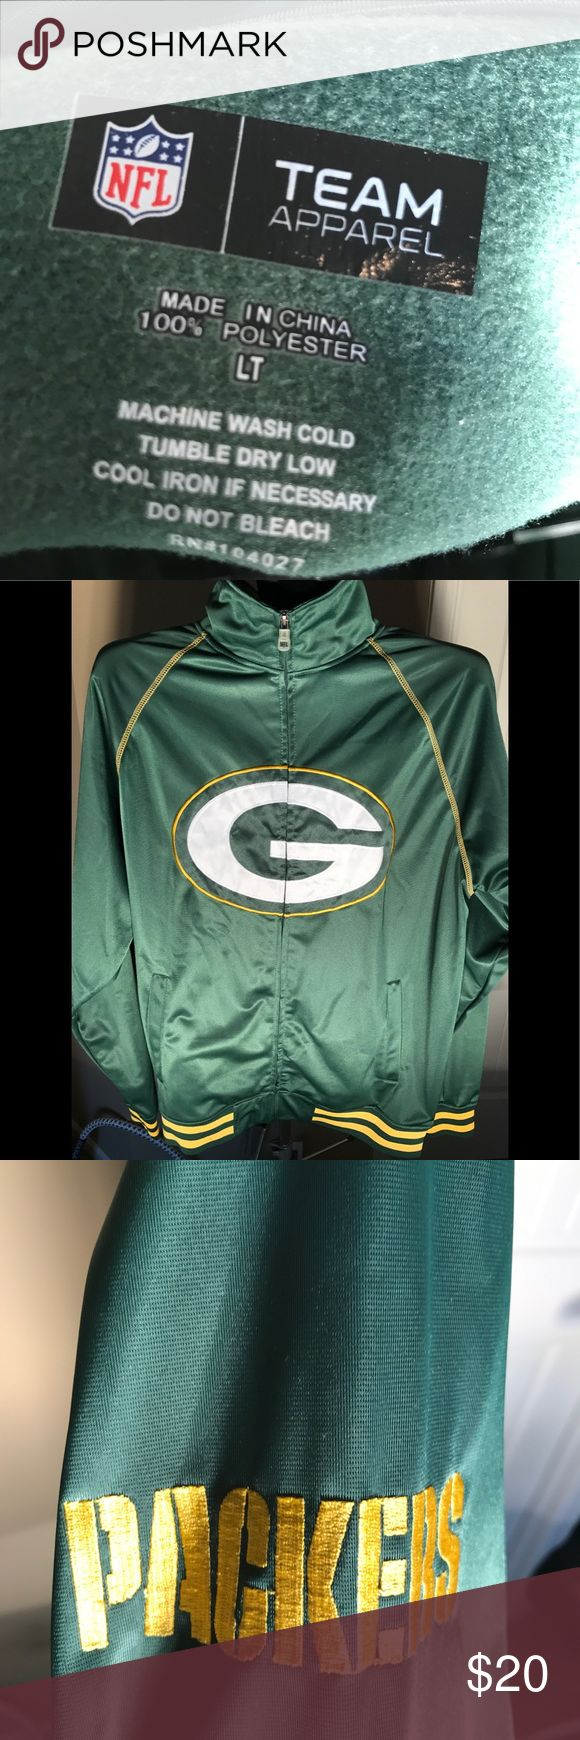 Packers jacket NWOT Packers jacket. Size LT. never worn. Would make a great gift! Please make offer! Go Pack! Shirts Sweatshirts & Hoodies